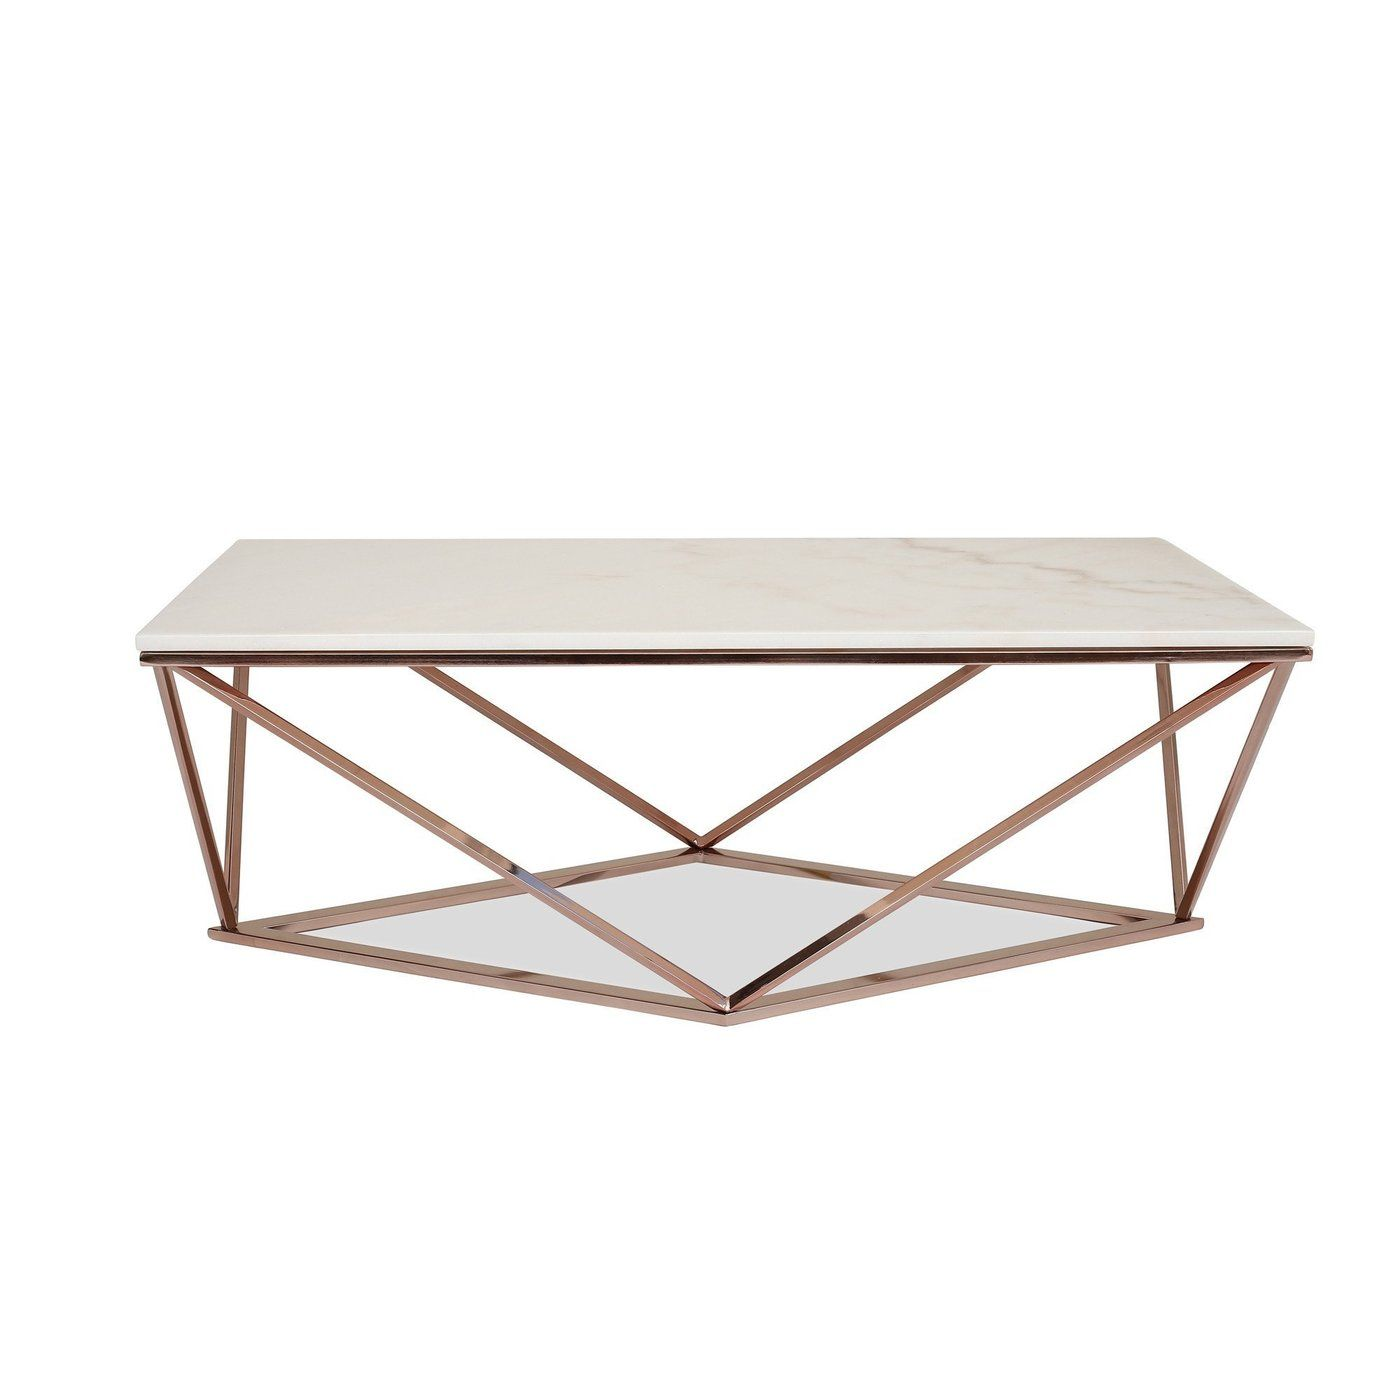 Aria Rose Gold Coffee Table With White Marble Top Gold Coffee Table Rose Gold Coffee Table Coffee Table [ 1400 x 1400 Pixel ]